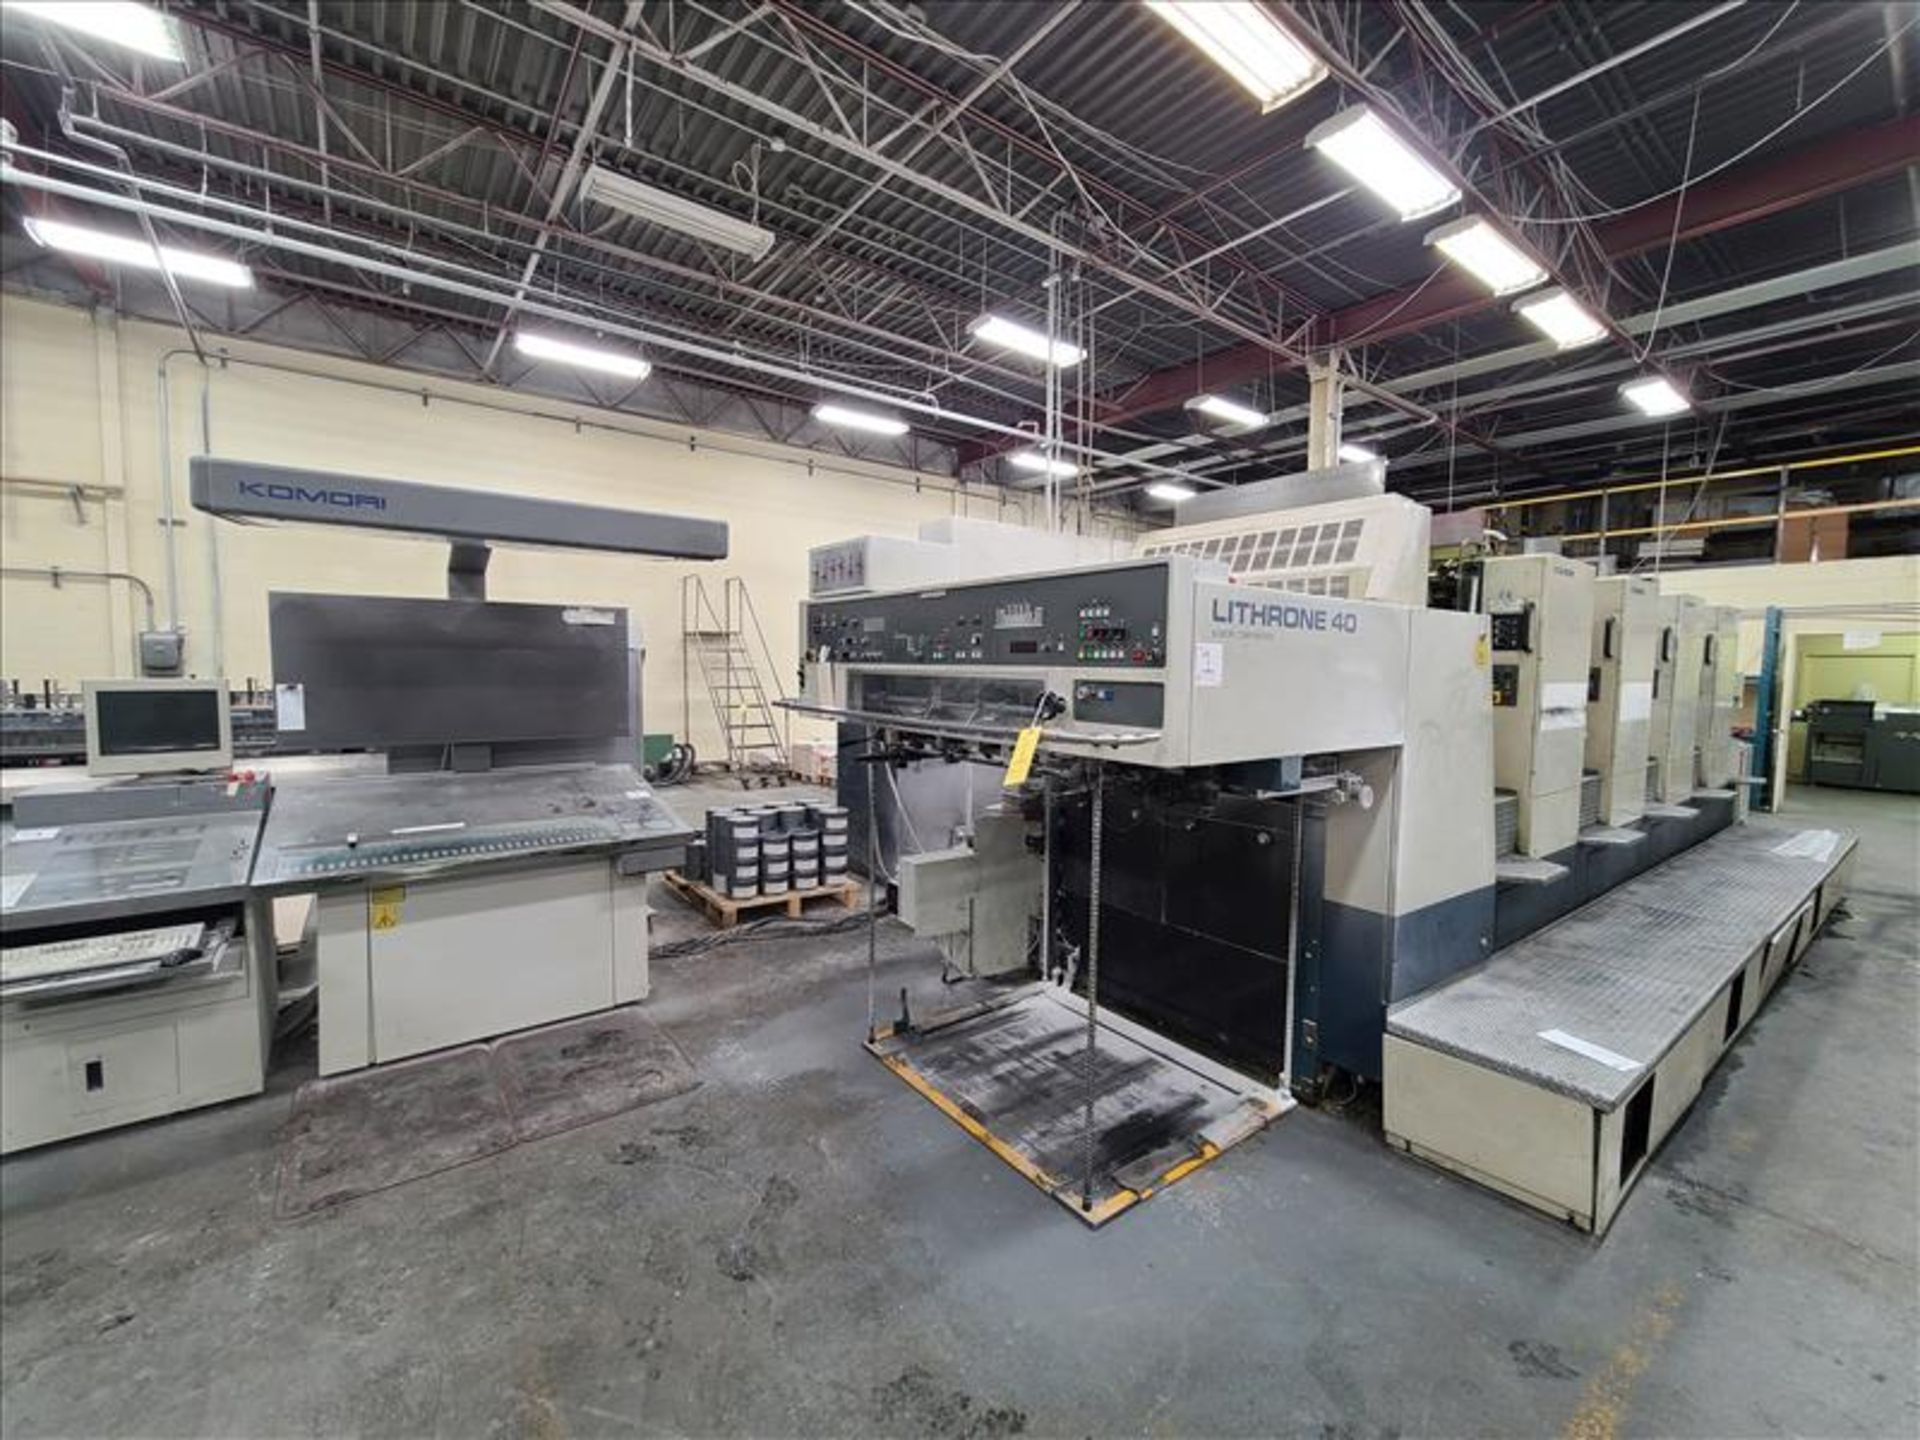 Komori 4-color offset printing press, Series Lithrone 40, model L-440, S/N.2202 approx. 68